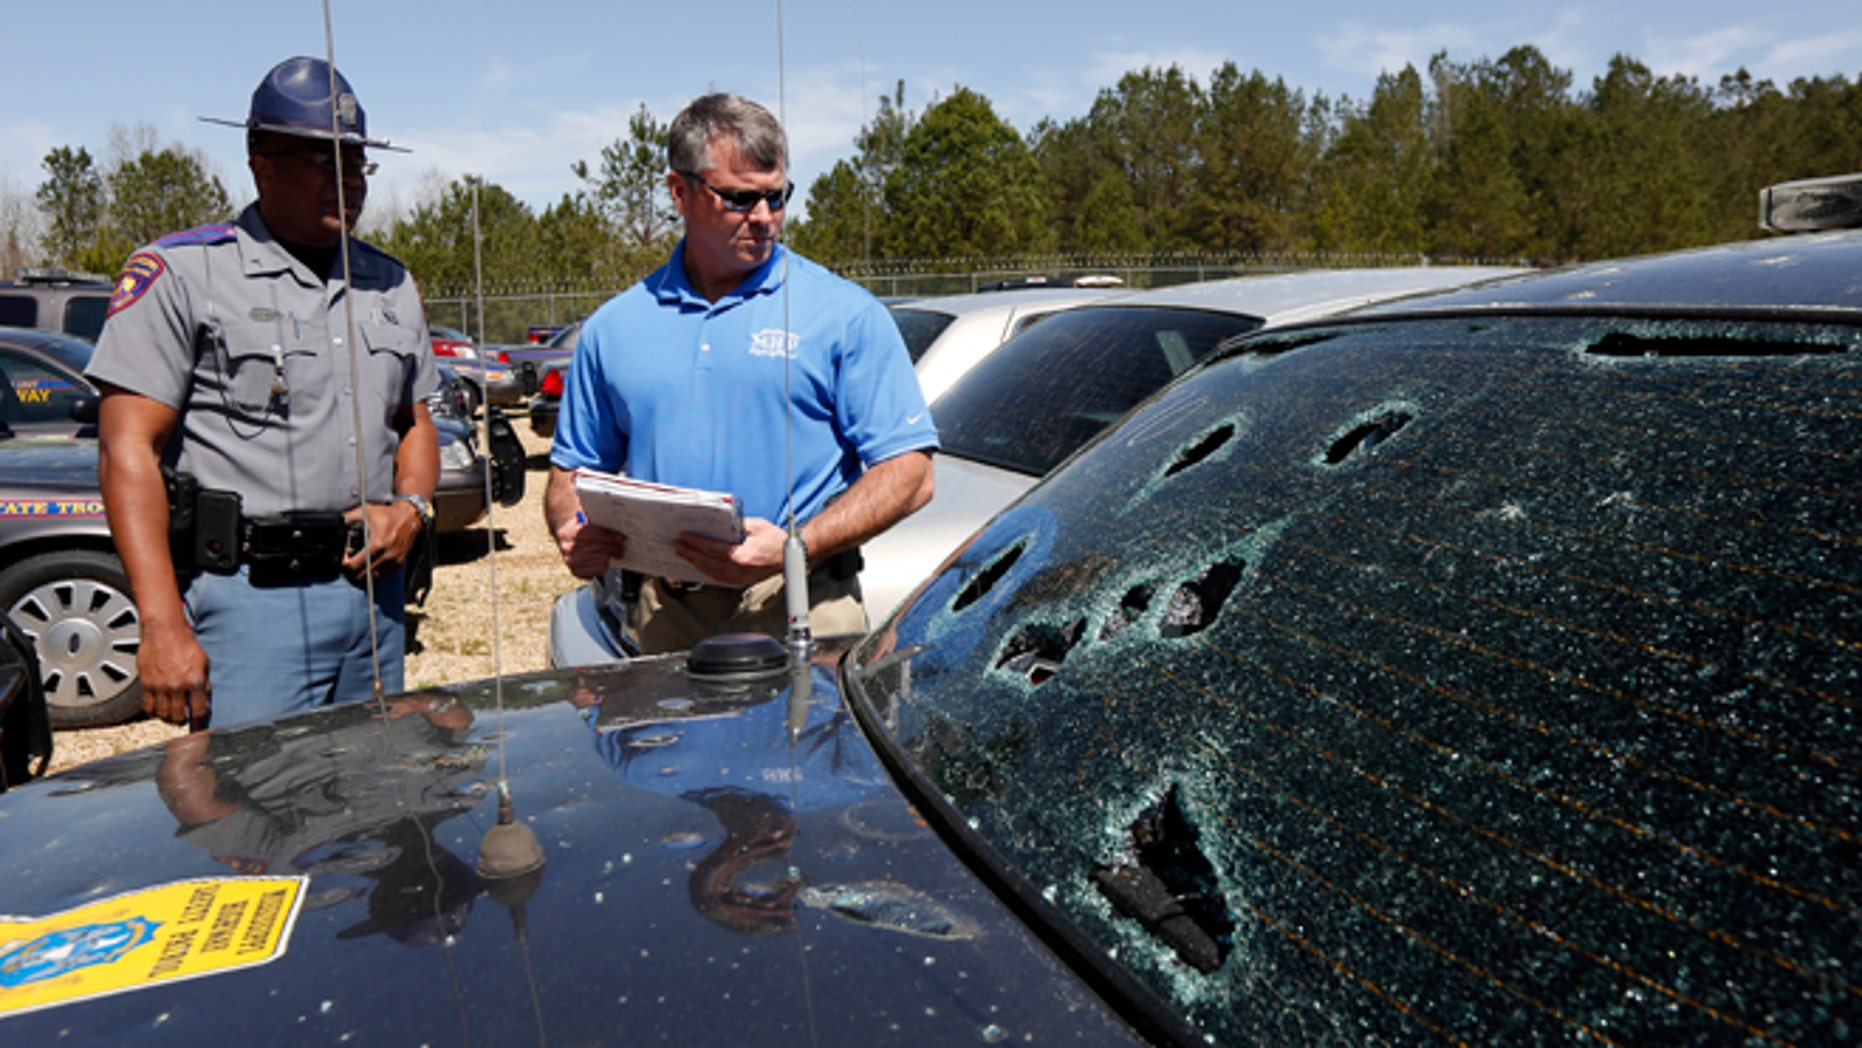 March 19: Mississippi Highway Patrol Lt. Col. Mike Holmes, right, and Cpl. Odis Easterling, survey the damage made by hail stones to a crusier in Pearl, Miss.